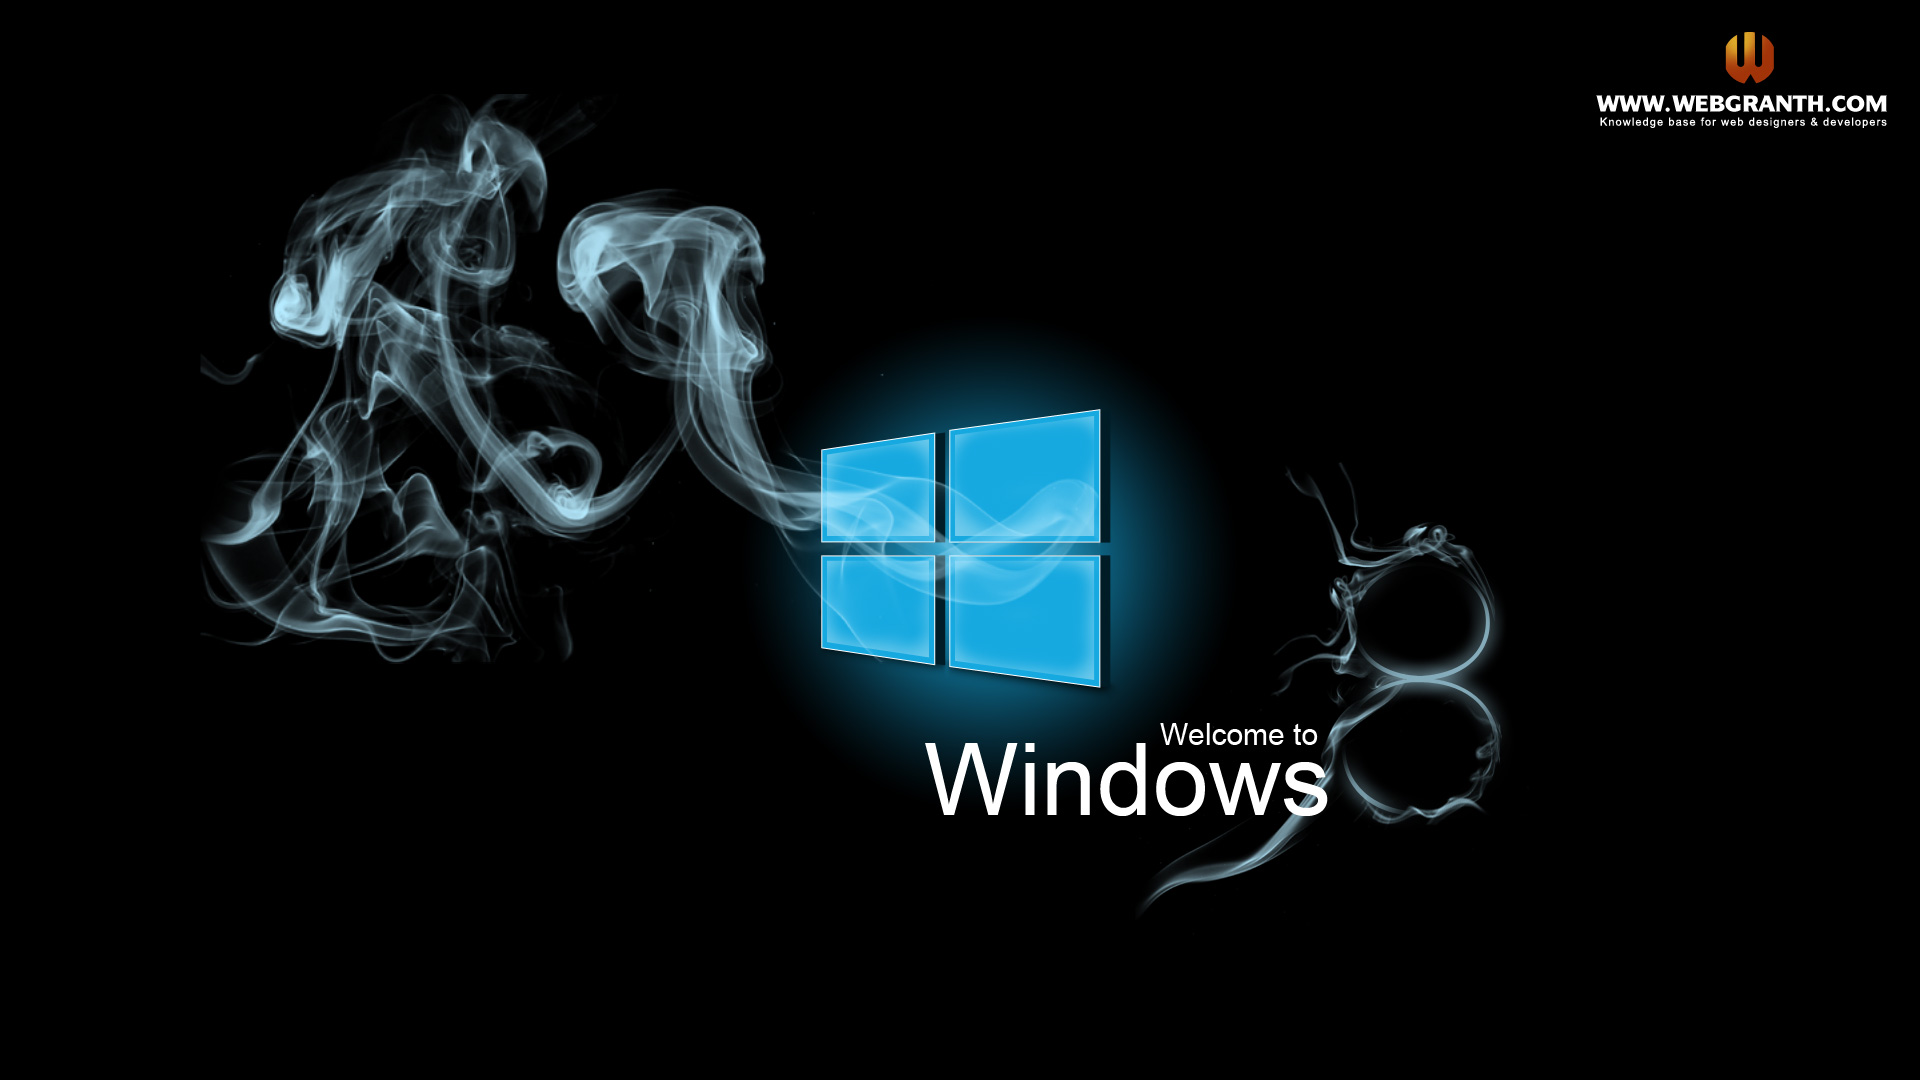 Win8 Live Wallpaper